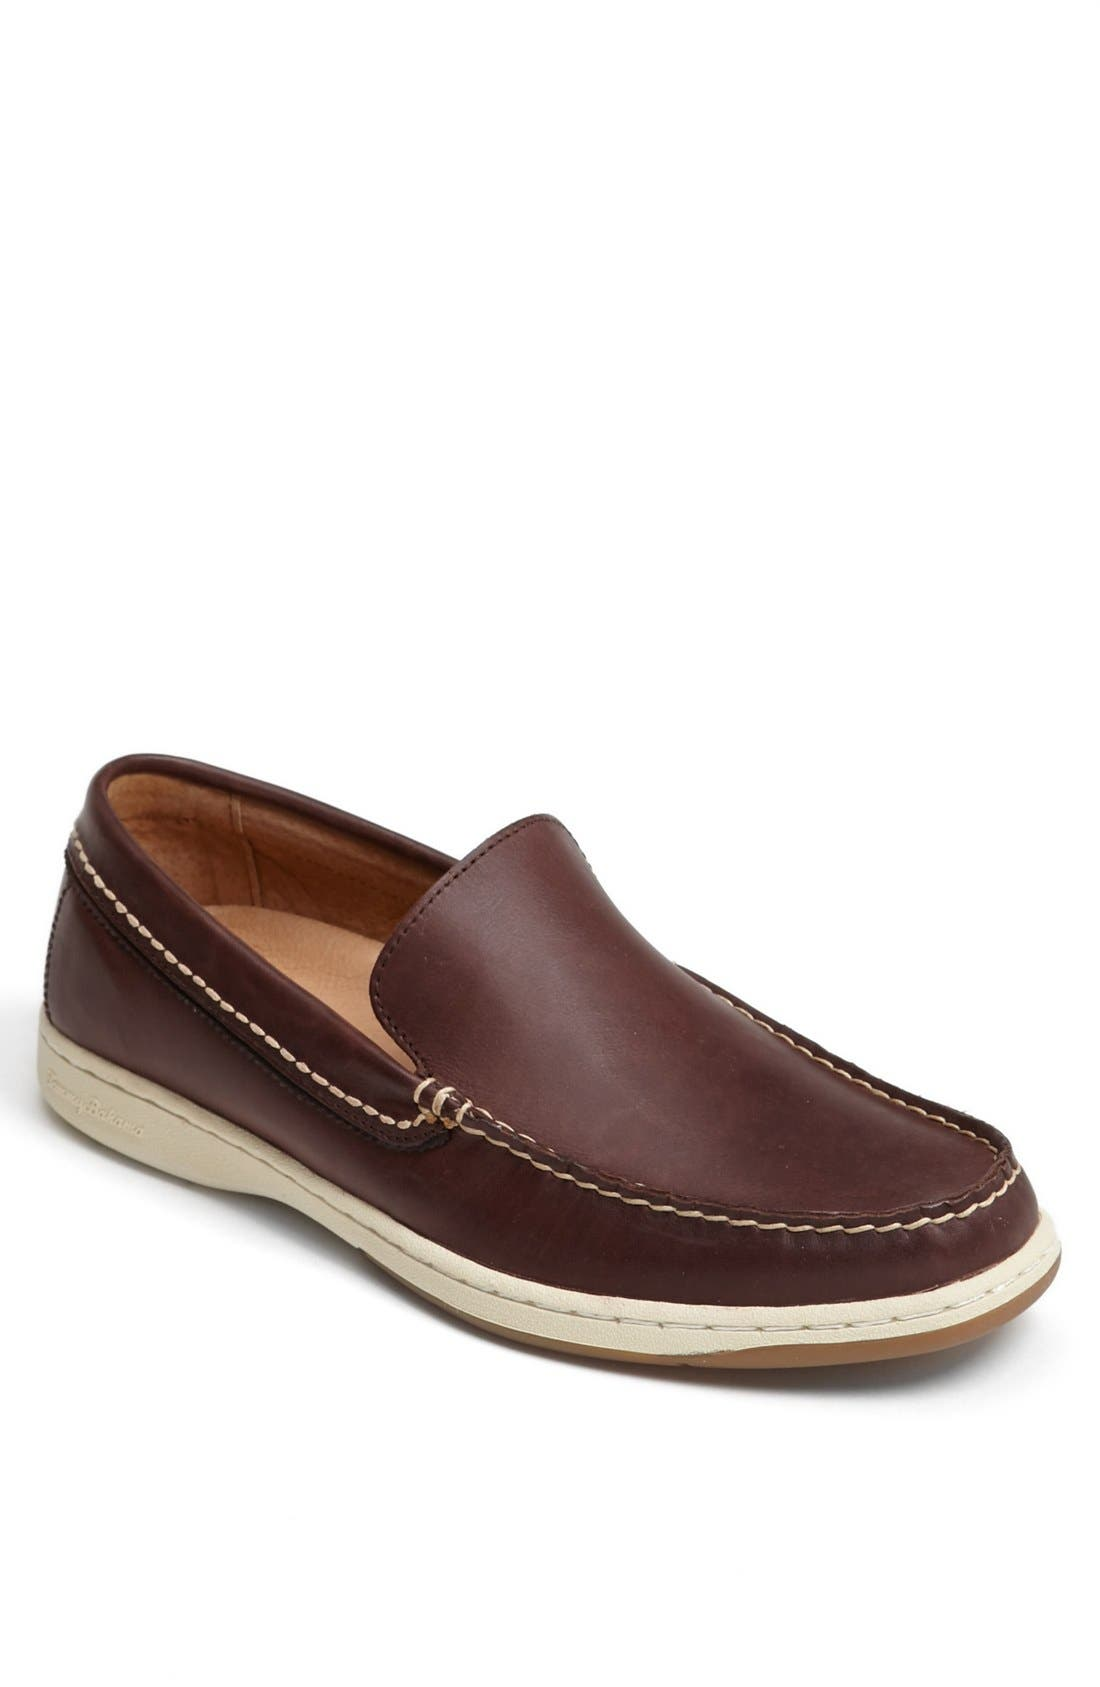 Alternate Image 1 Selected - Tommy Bahama 'Alexander' Slip-On